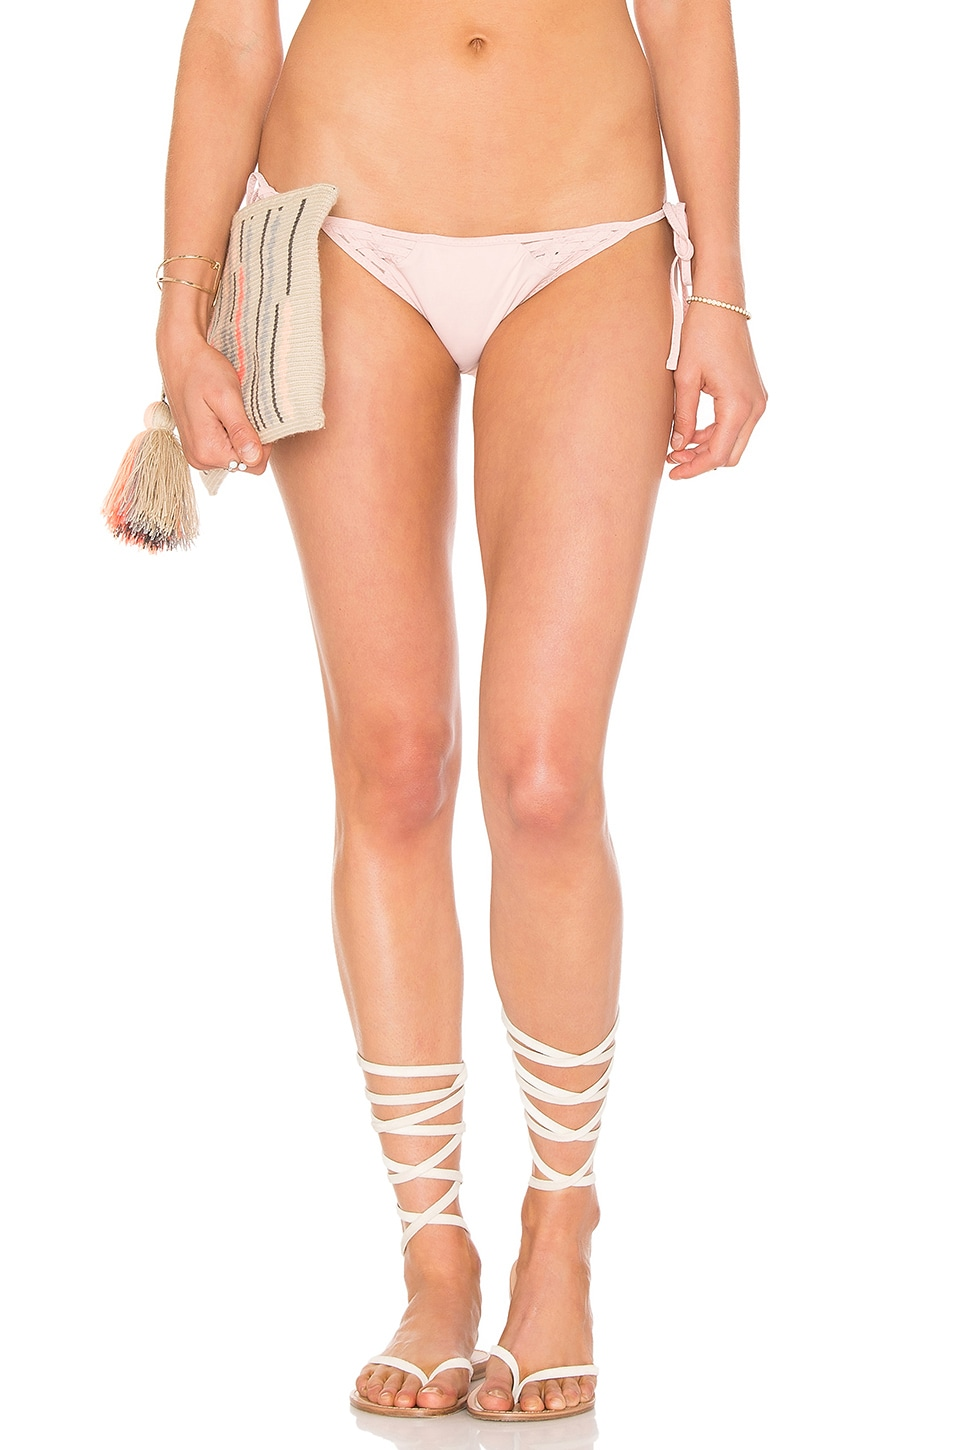 CLUBE BOSSA Launder Side Tie Bikini Bottom in Blush